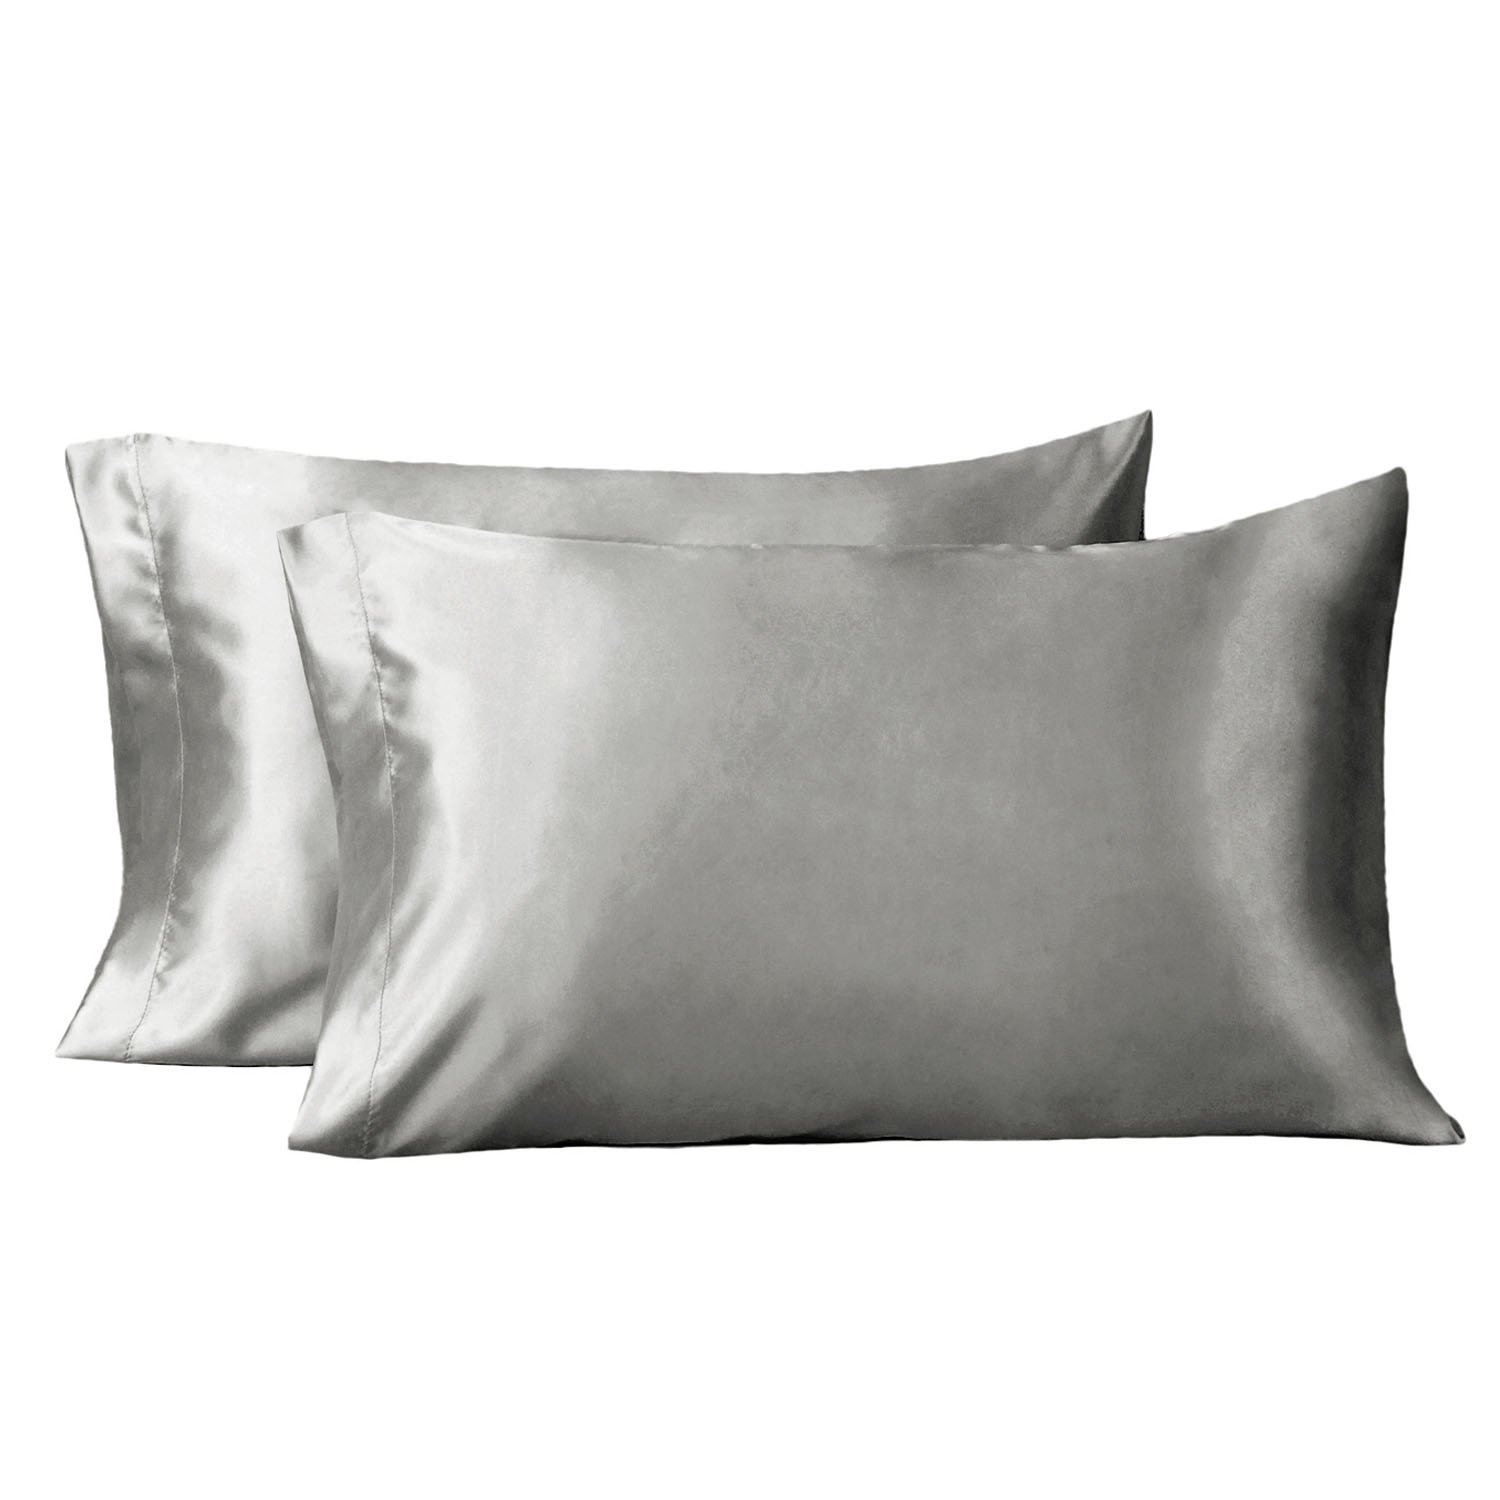 Bedsure Satin Pillowcases Set for Hair -Queen Size Pillowcase Covers with Envelope Closure -Cool and Easy to Wash -Black 20x30 Set of 2 - Only Pillow Cover No Insert Bedshe